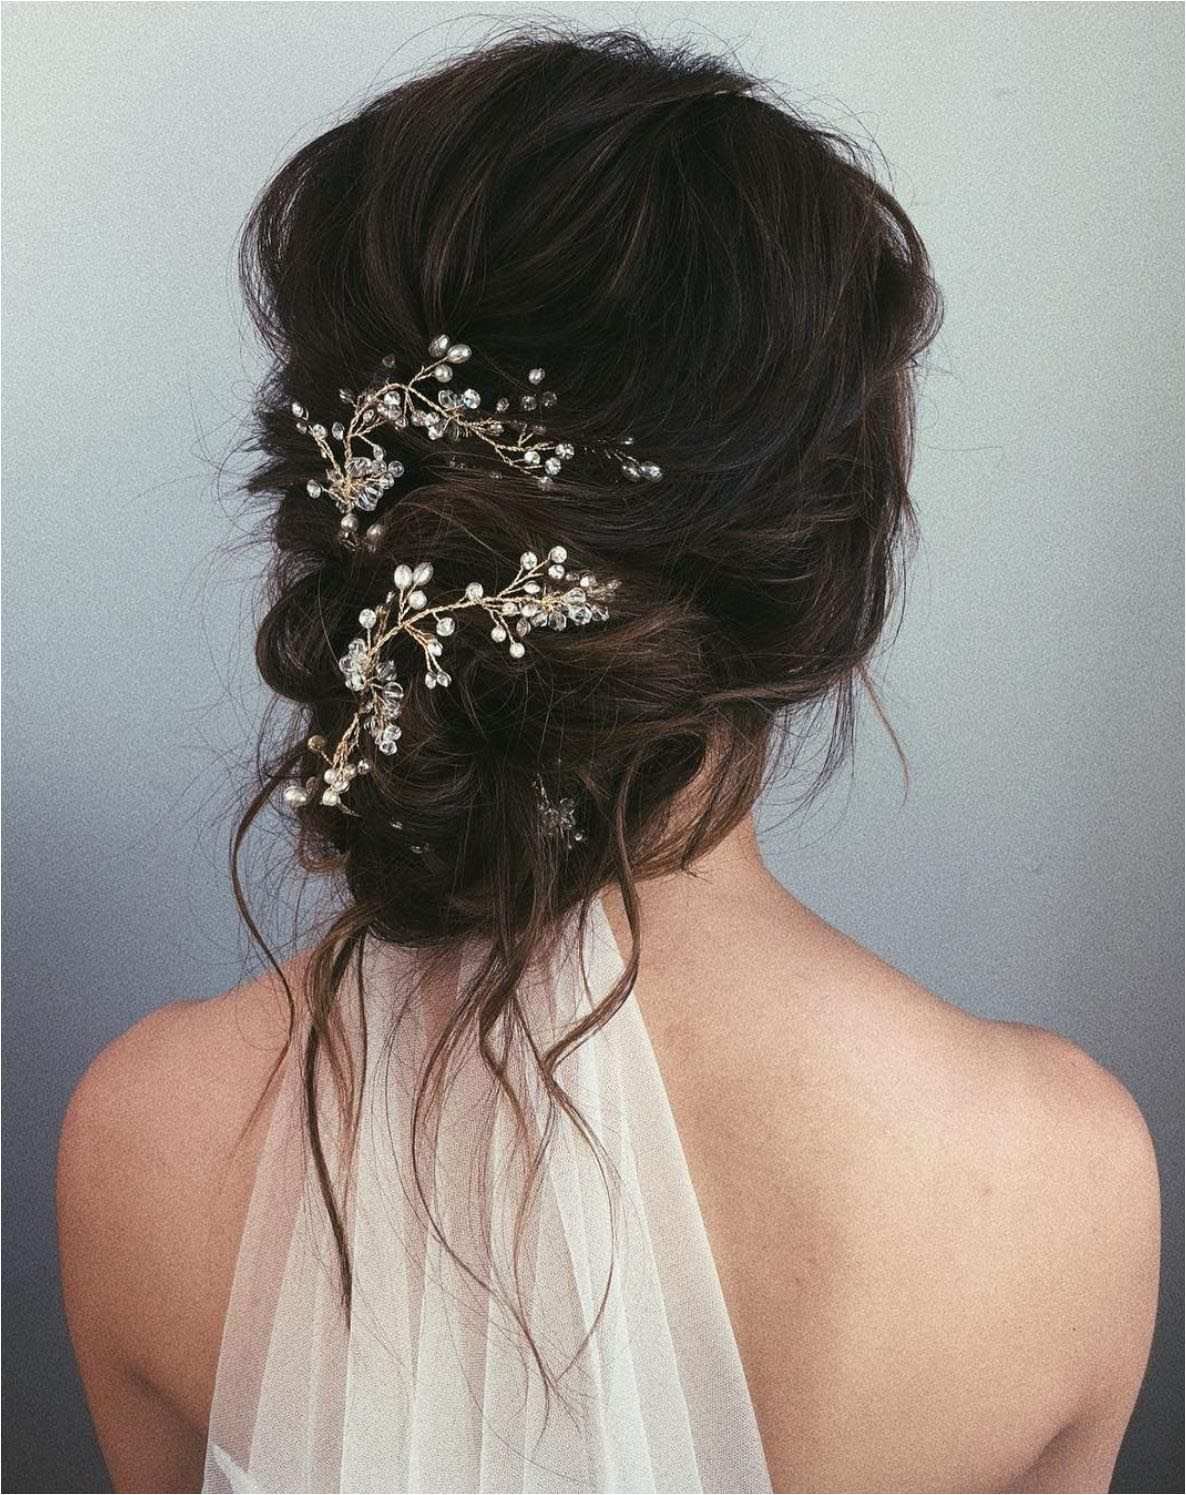 A hairpiece is all you need to take your messy bun from dressed down to dressed up